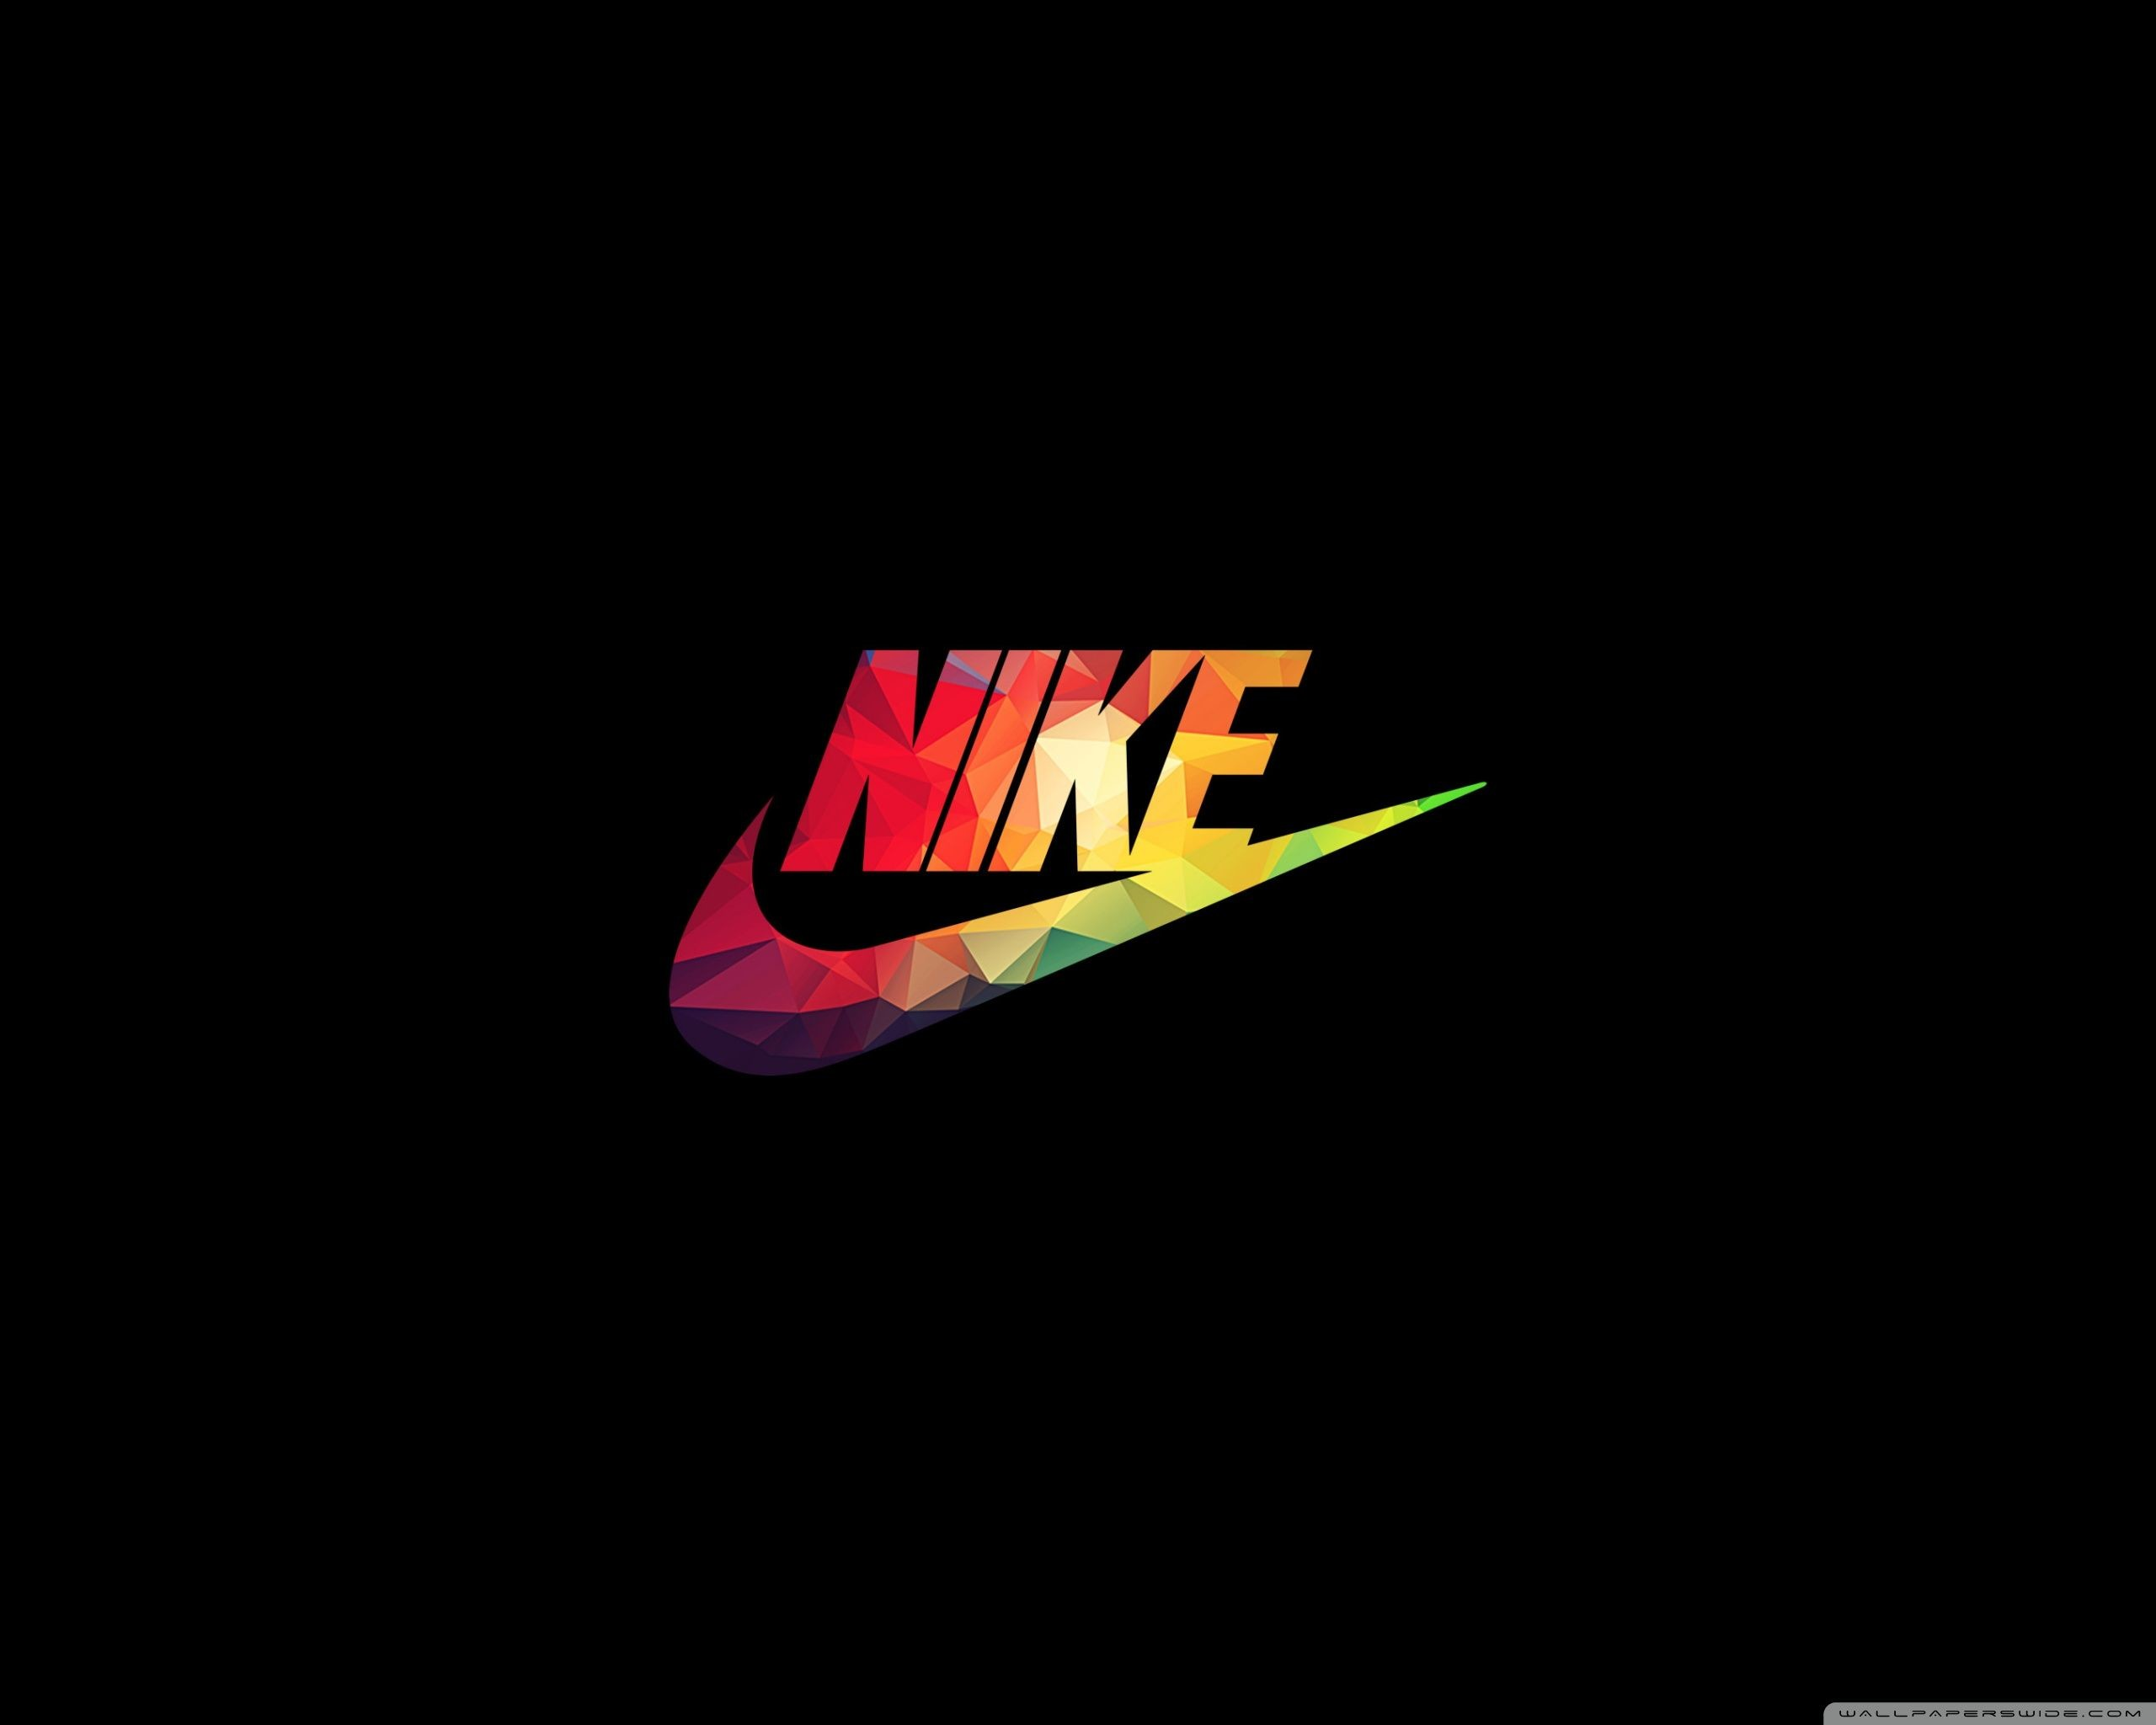 Nike hd wallpapers 69 background pictures 2560x2048 nike hd desktop wallpaper widescreen fullscreen mobile thecheapjerseys Gallery